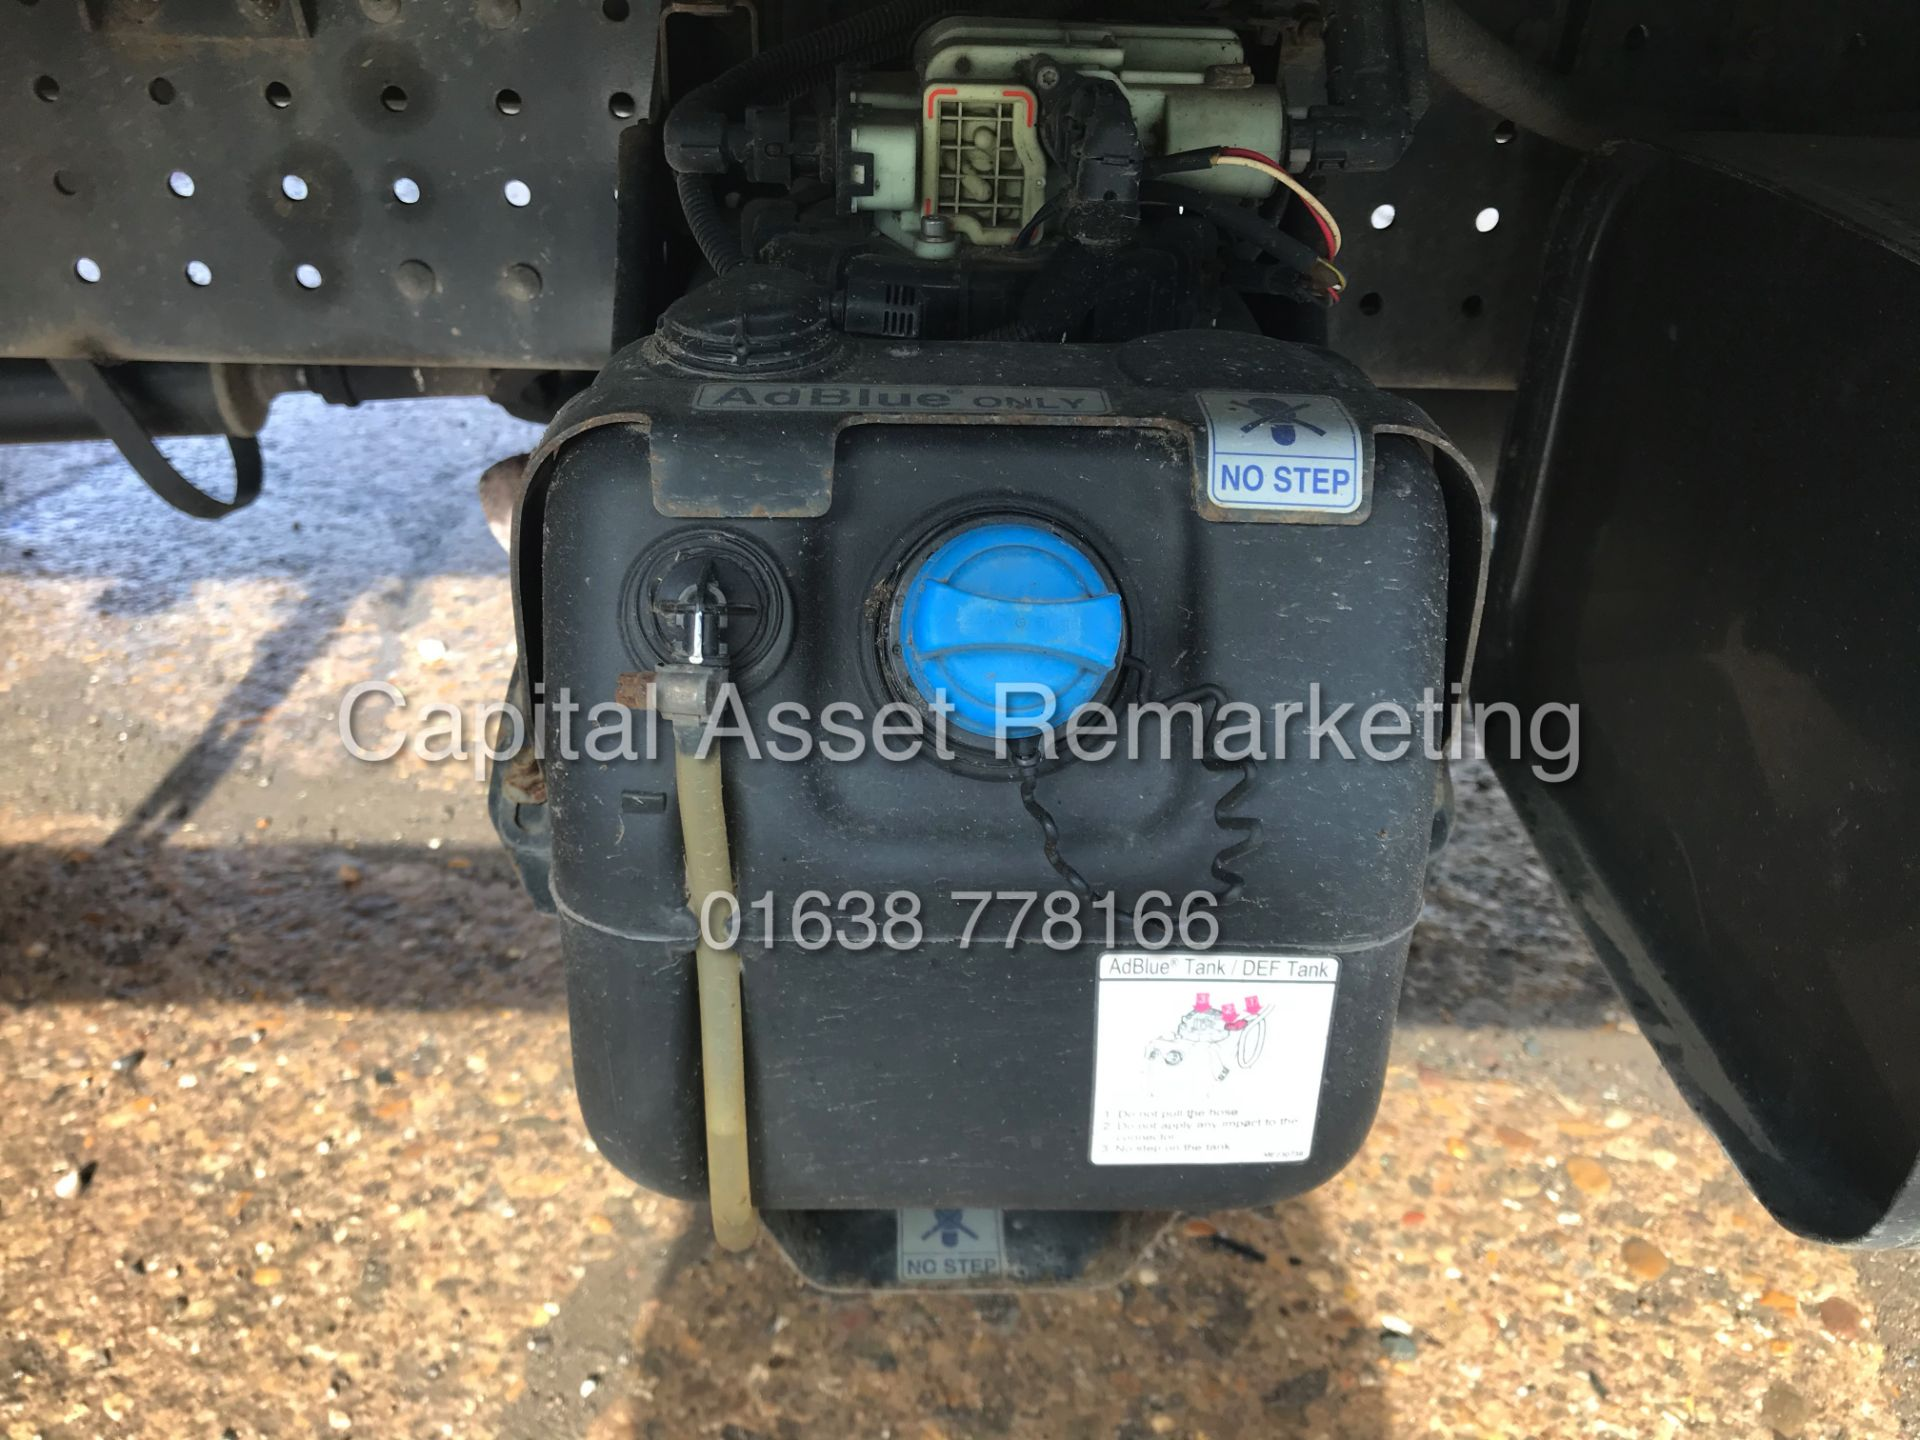 (ON SALE) MITSUBISHI FUSO CANTER 7C18 (16 REG) 1 OWNER *EURO 6* AD-BLUE - 4 WAY CAMERA SYSTEM - Image 12 of 20